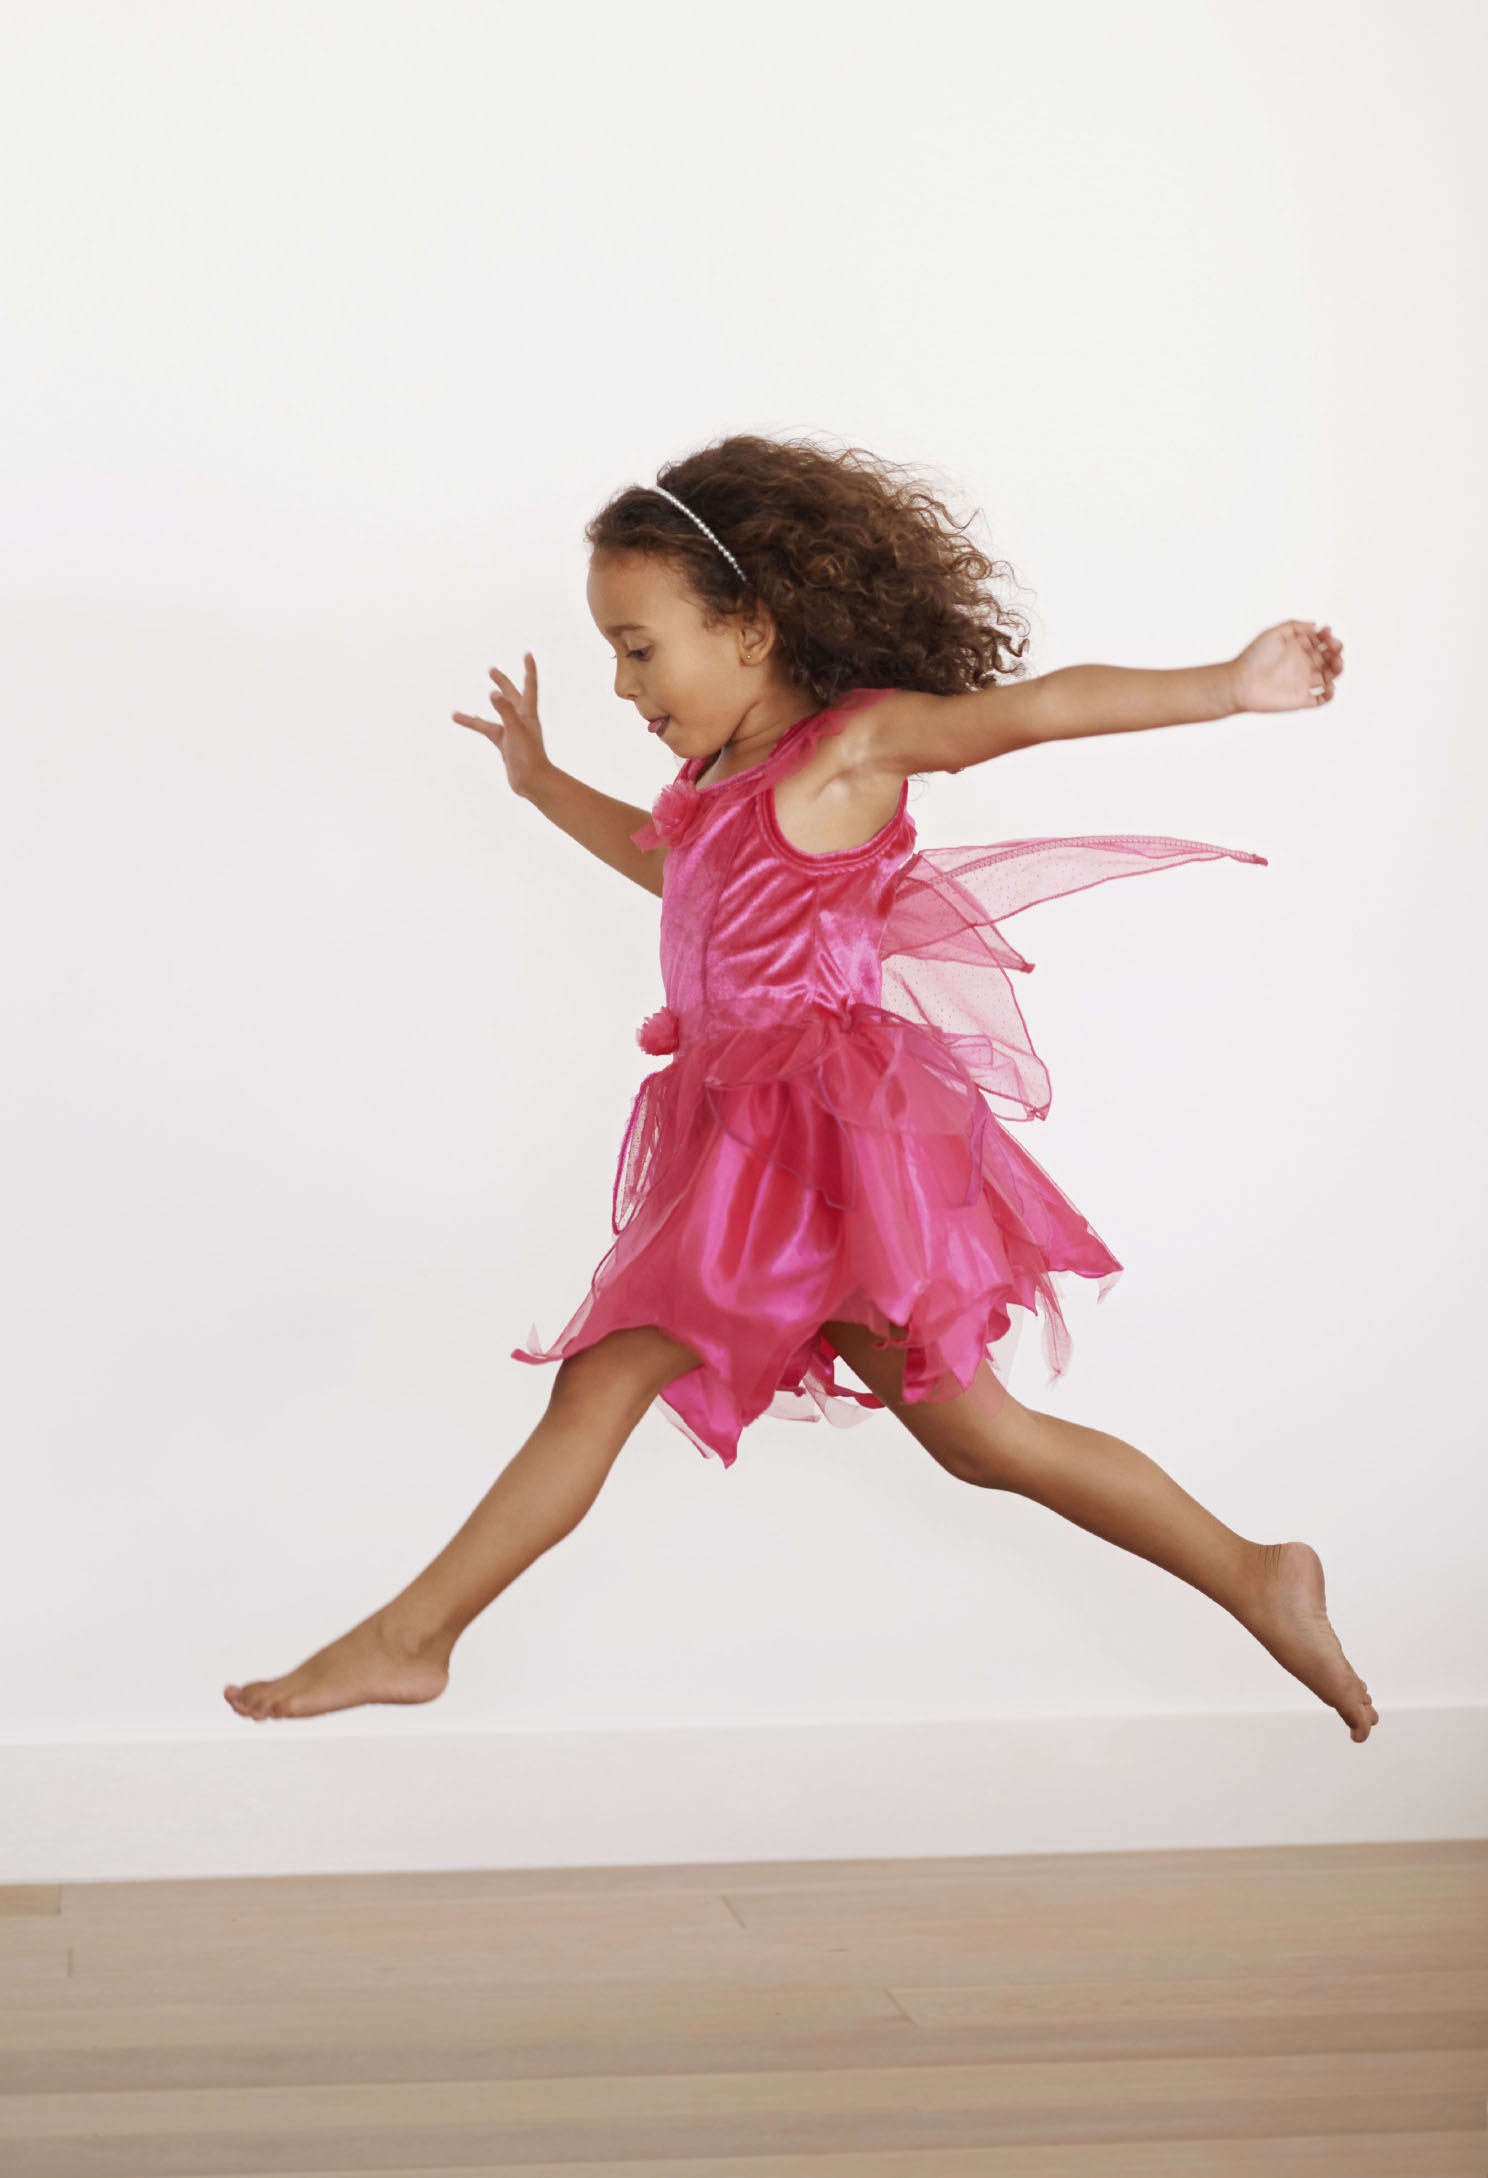 Chiropractic care helps keep children at their best